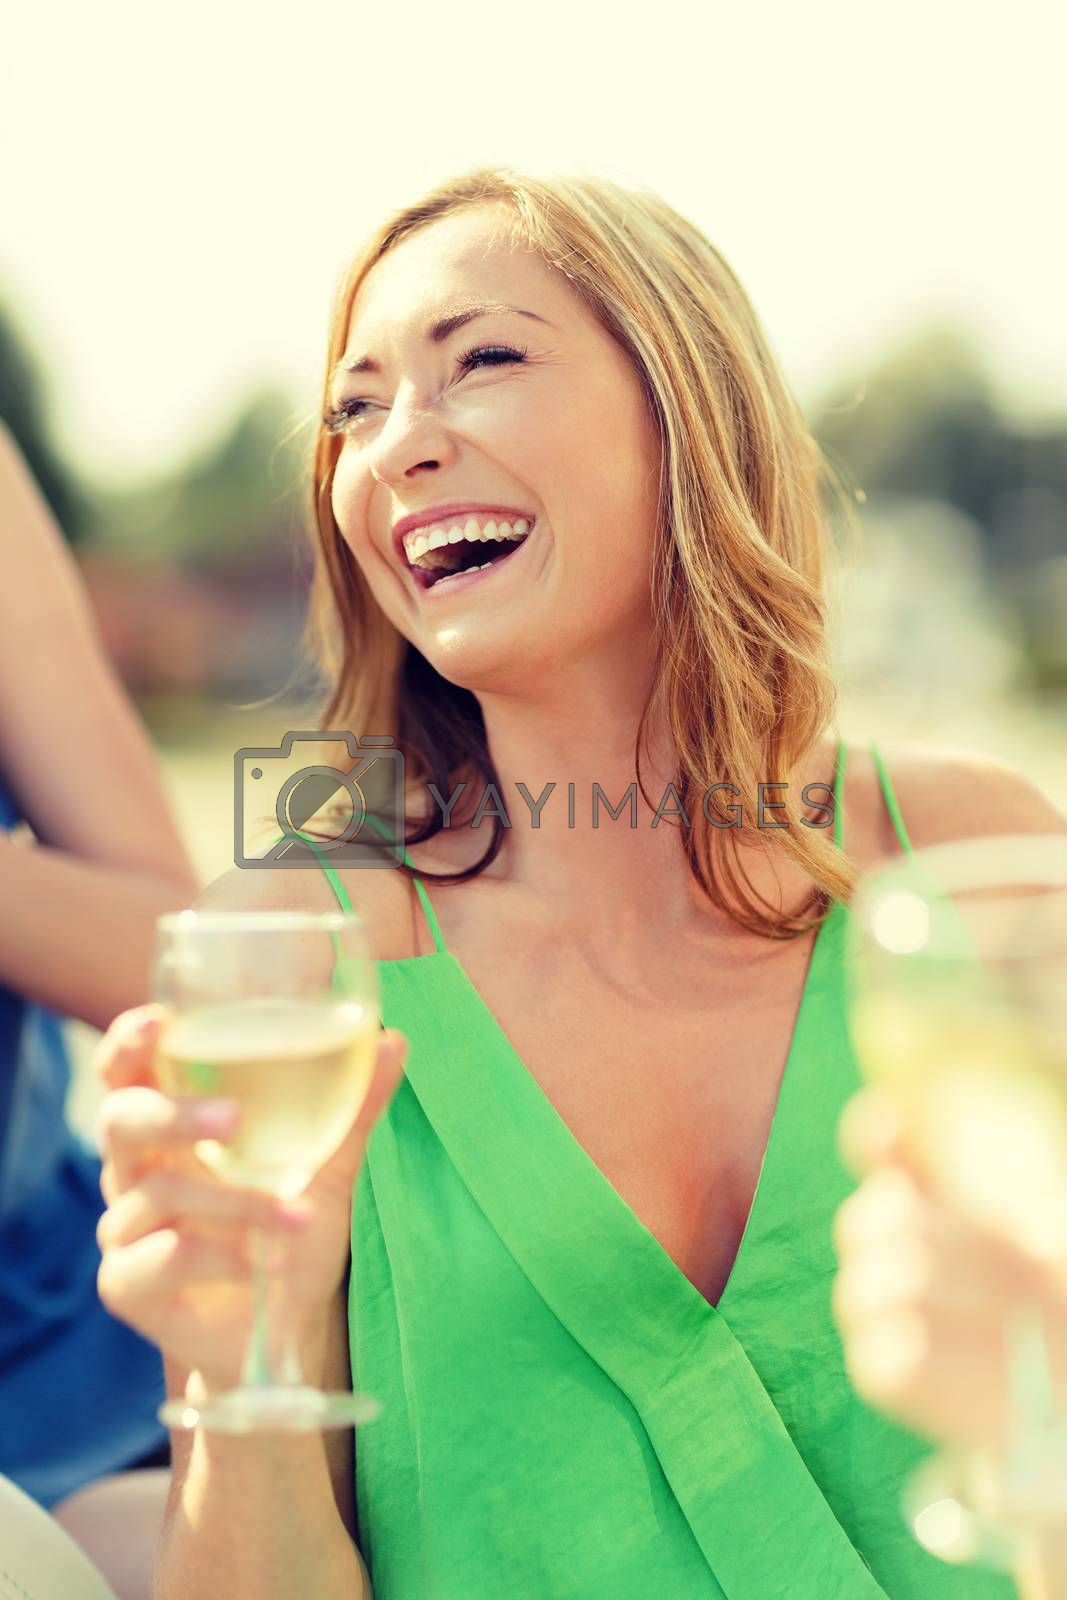 summer holidays, vacation and celebration concept - laughing woman with wine glass